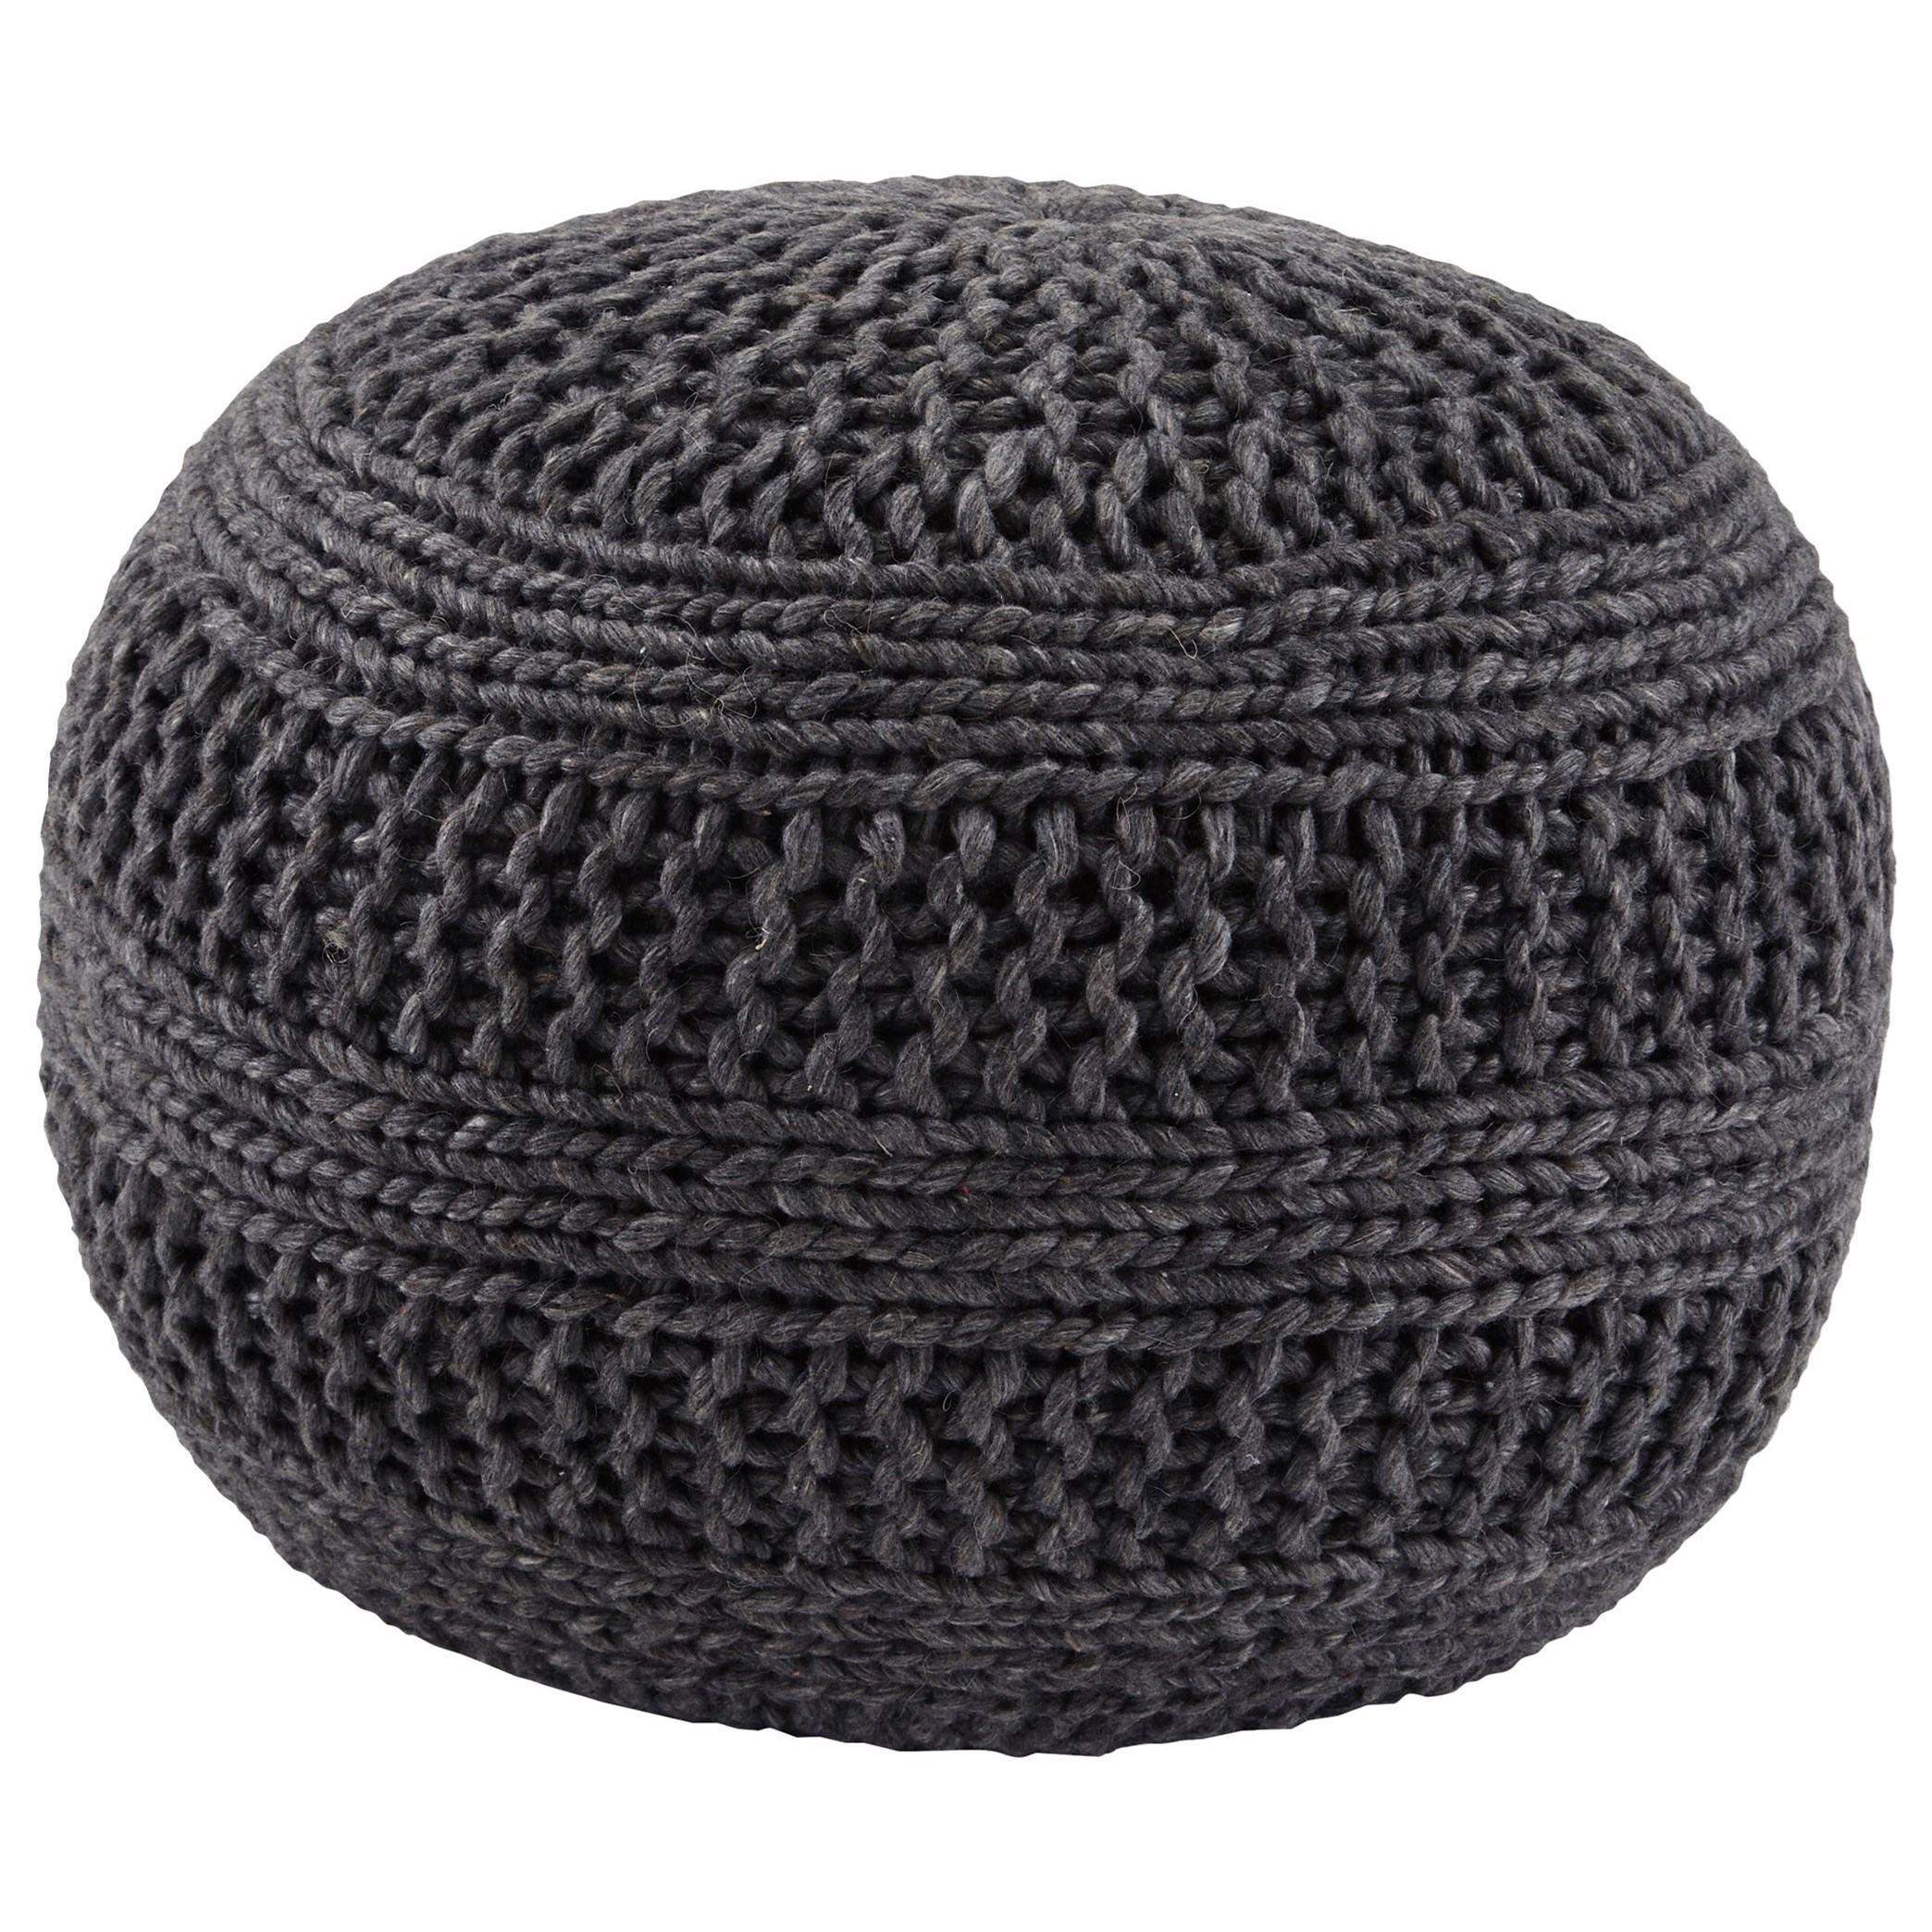 Poufs Benedict - Charcoal Pouf by Ashley (Signature Design) at Johnny Janosik